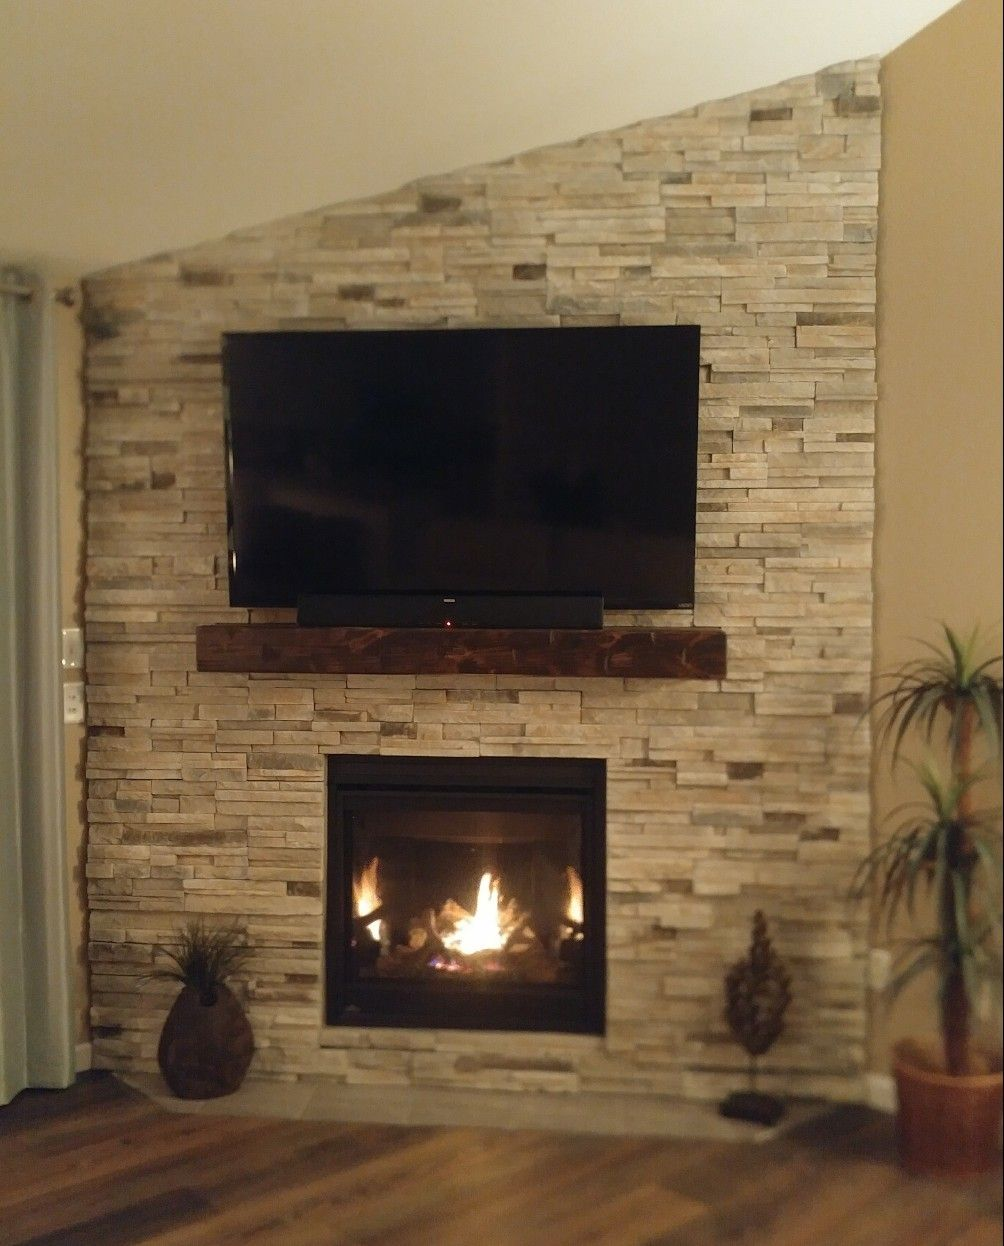 Wall Mounted Natural Gas Fireplace Lovely Corner Fireplace Remodel Makeover with Tv Mounted Above